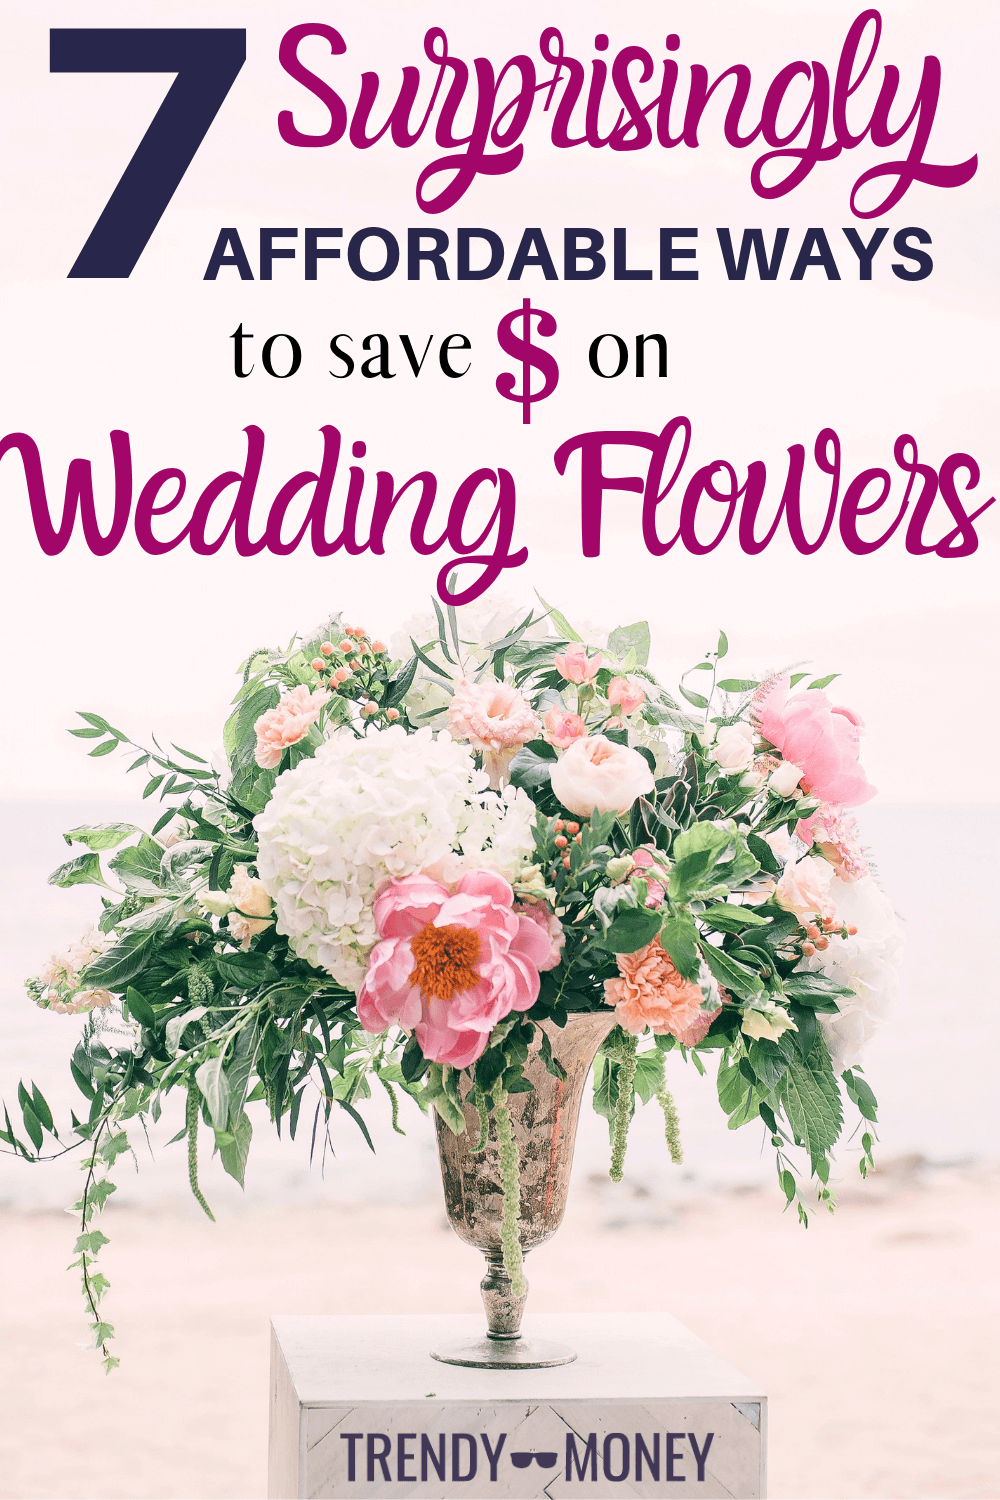 Looking For Ways To Stick To Your Wedding Budget Wedding Flowers Don T Have To Break Your Budget Budget Wedding Flowers Wedding Flowers Cost Wedding Flowers